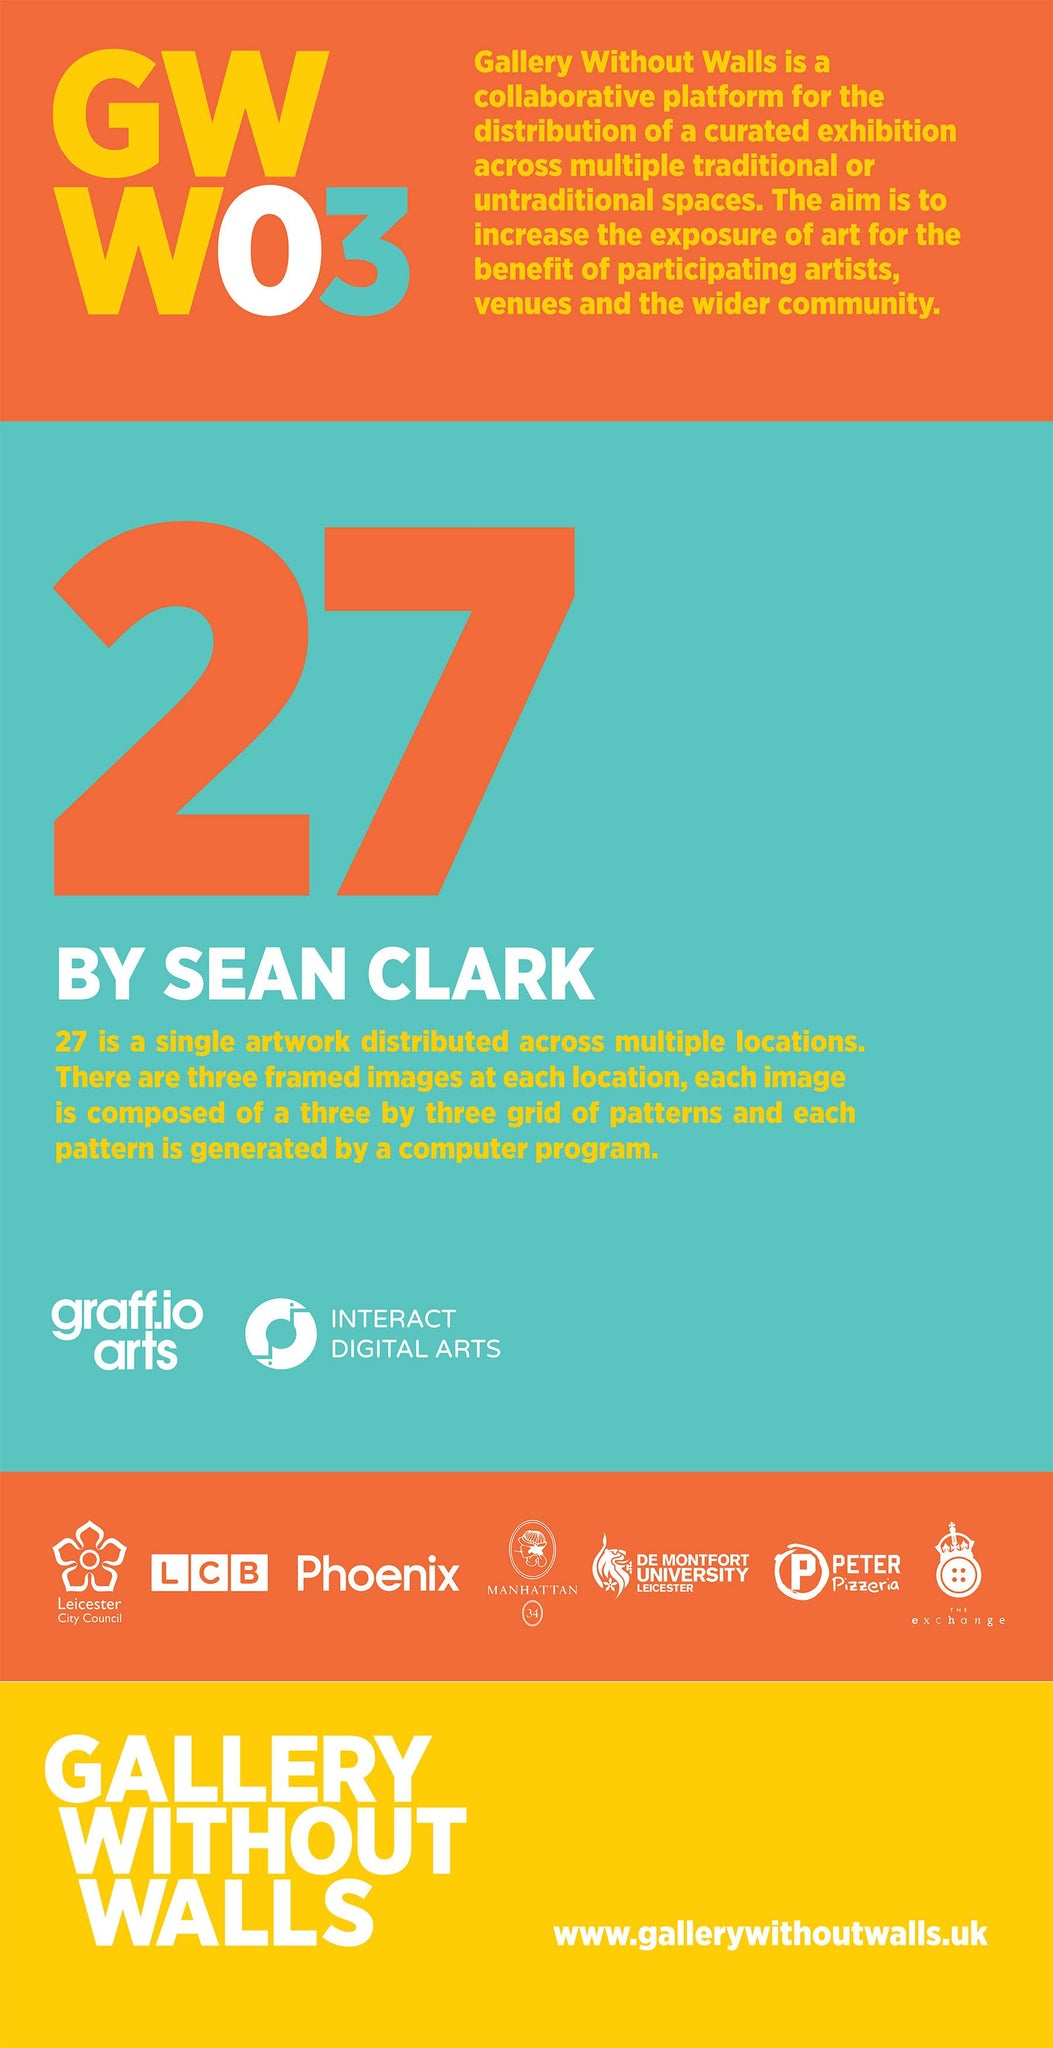 Gallery without walls 03 - Sean Clark - peter pizza""